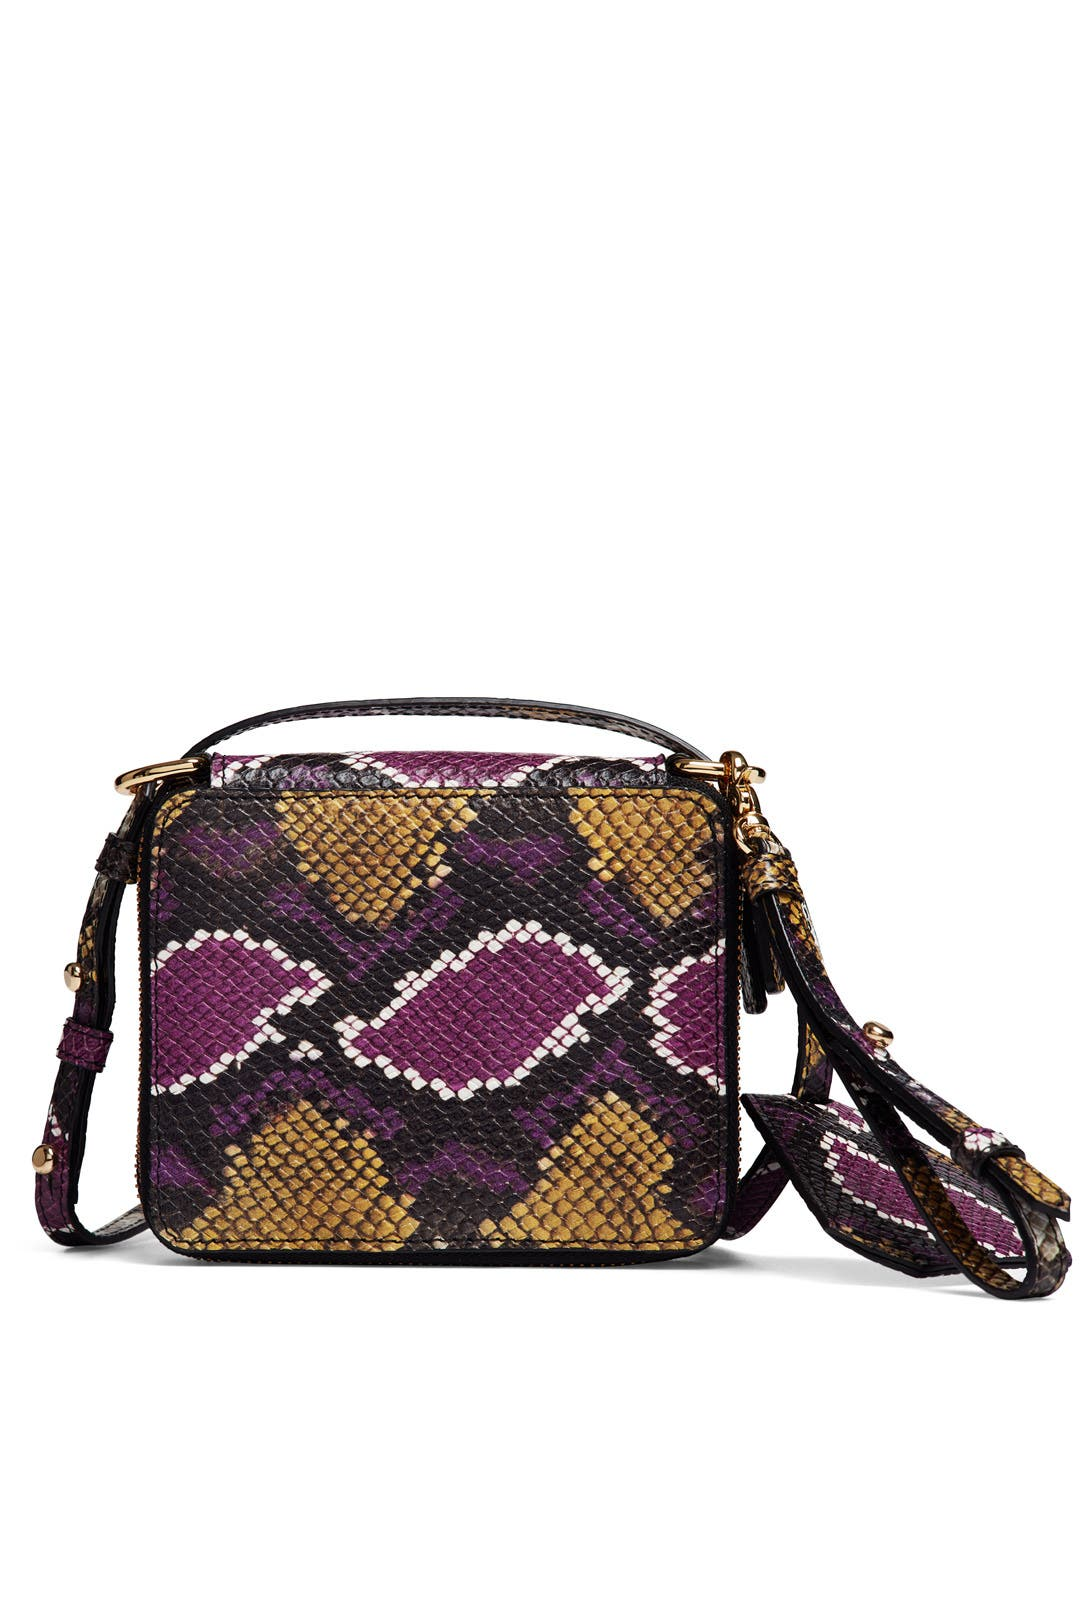 Snake Print Mini Bag By Marques